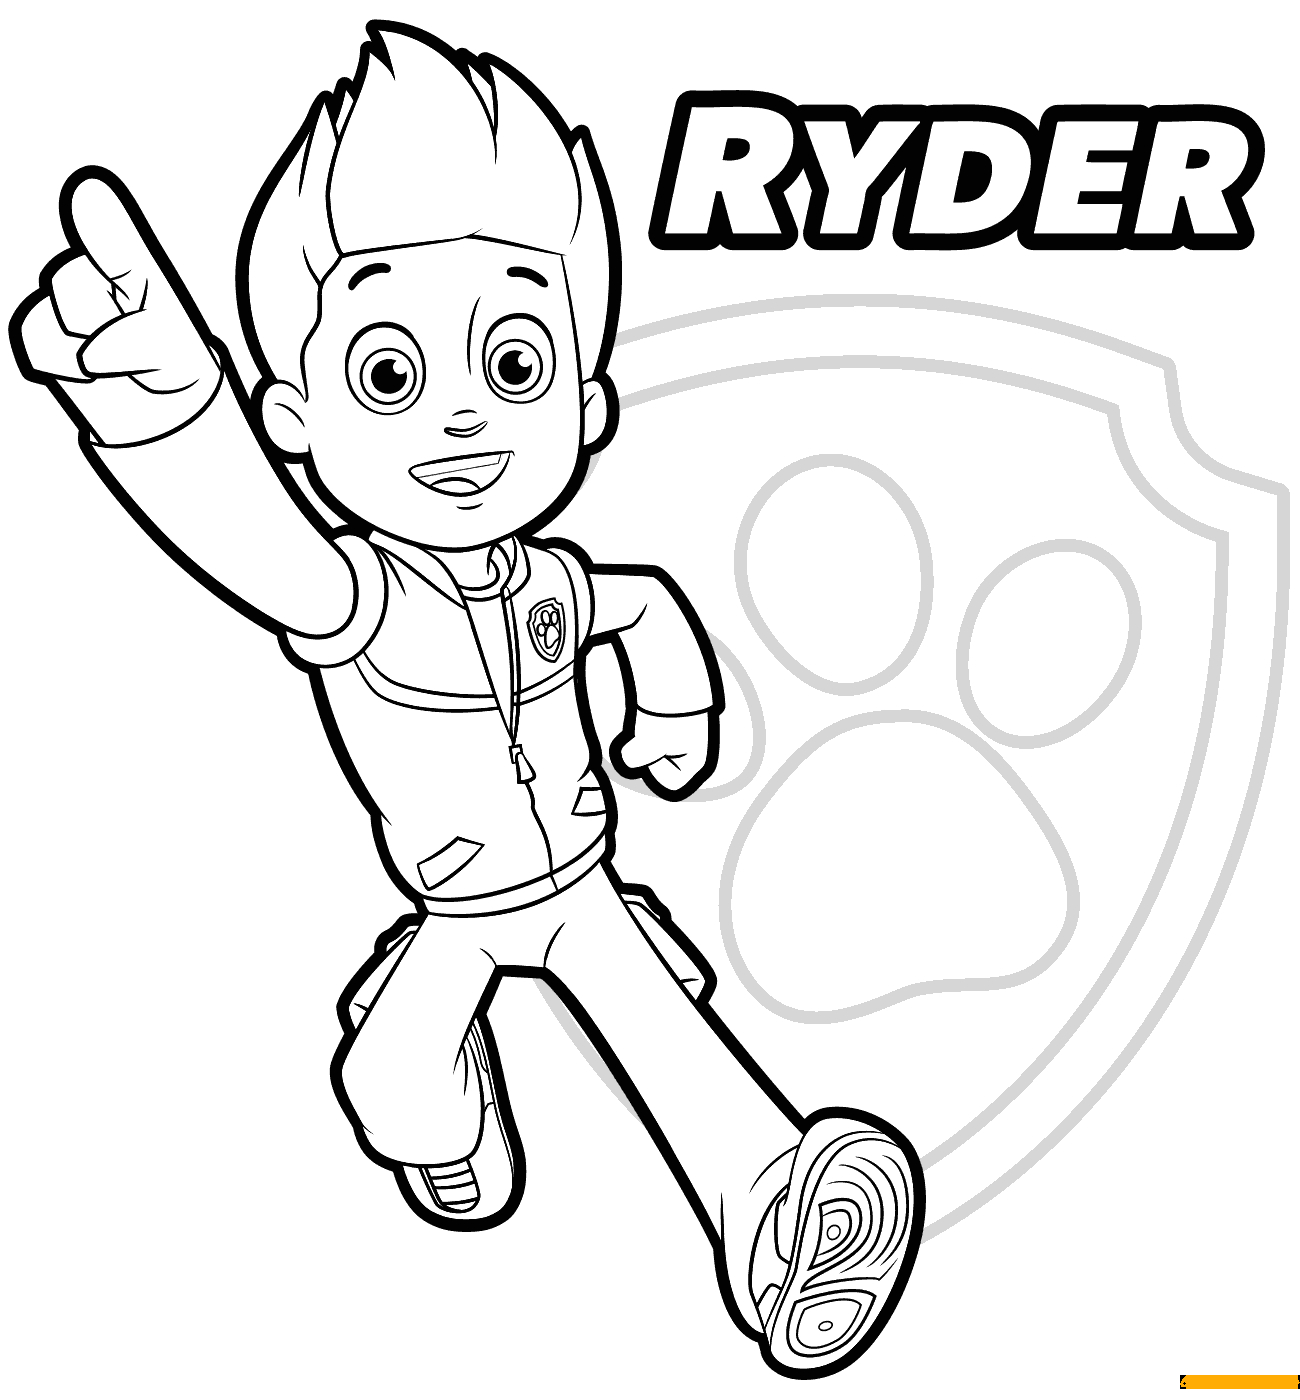 Paw Patrol Ryder Coloring Pages to Print Paw Patrol Ryder 1 Coloring Pages Cartoons Coloring